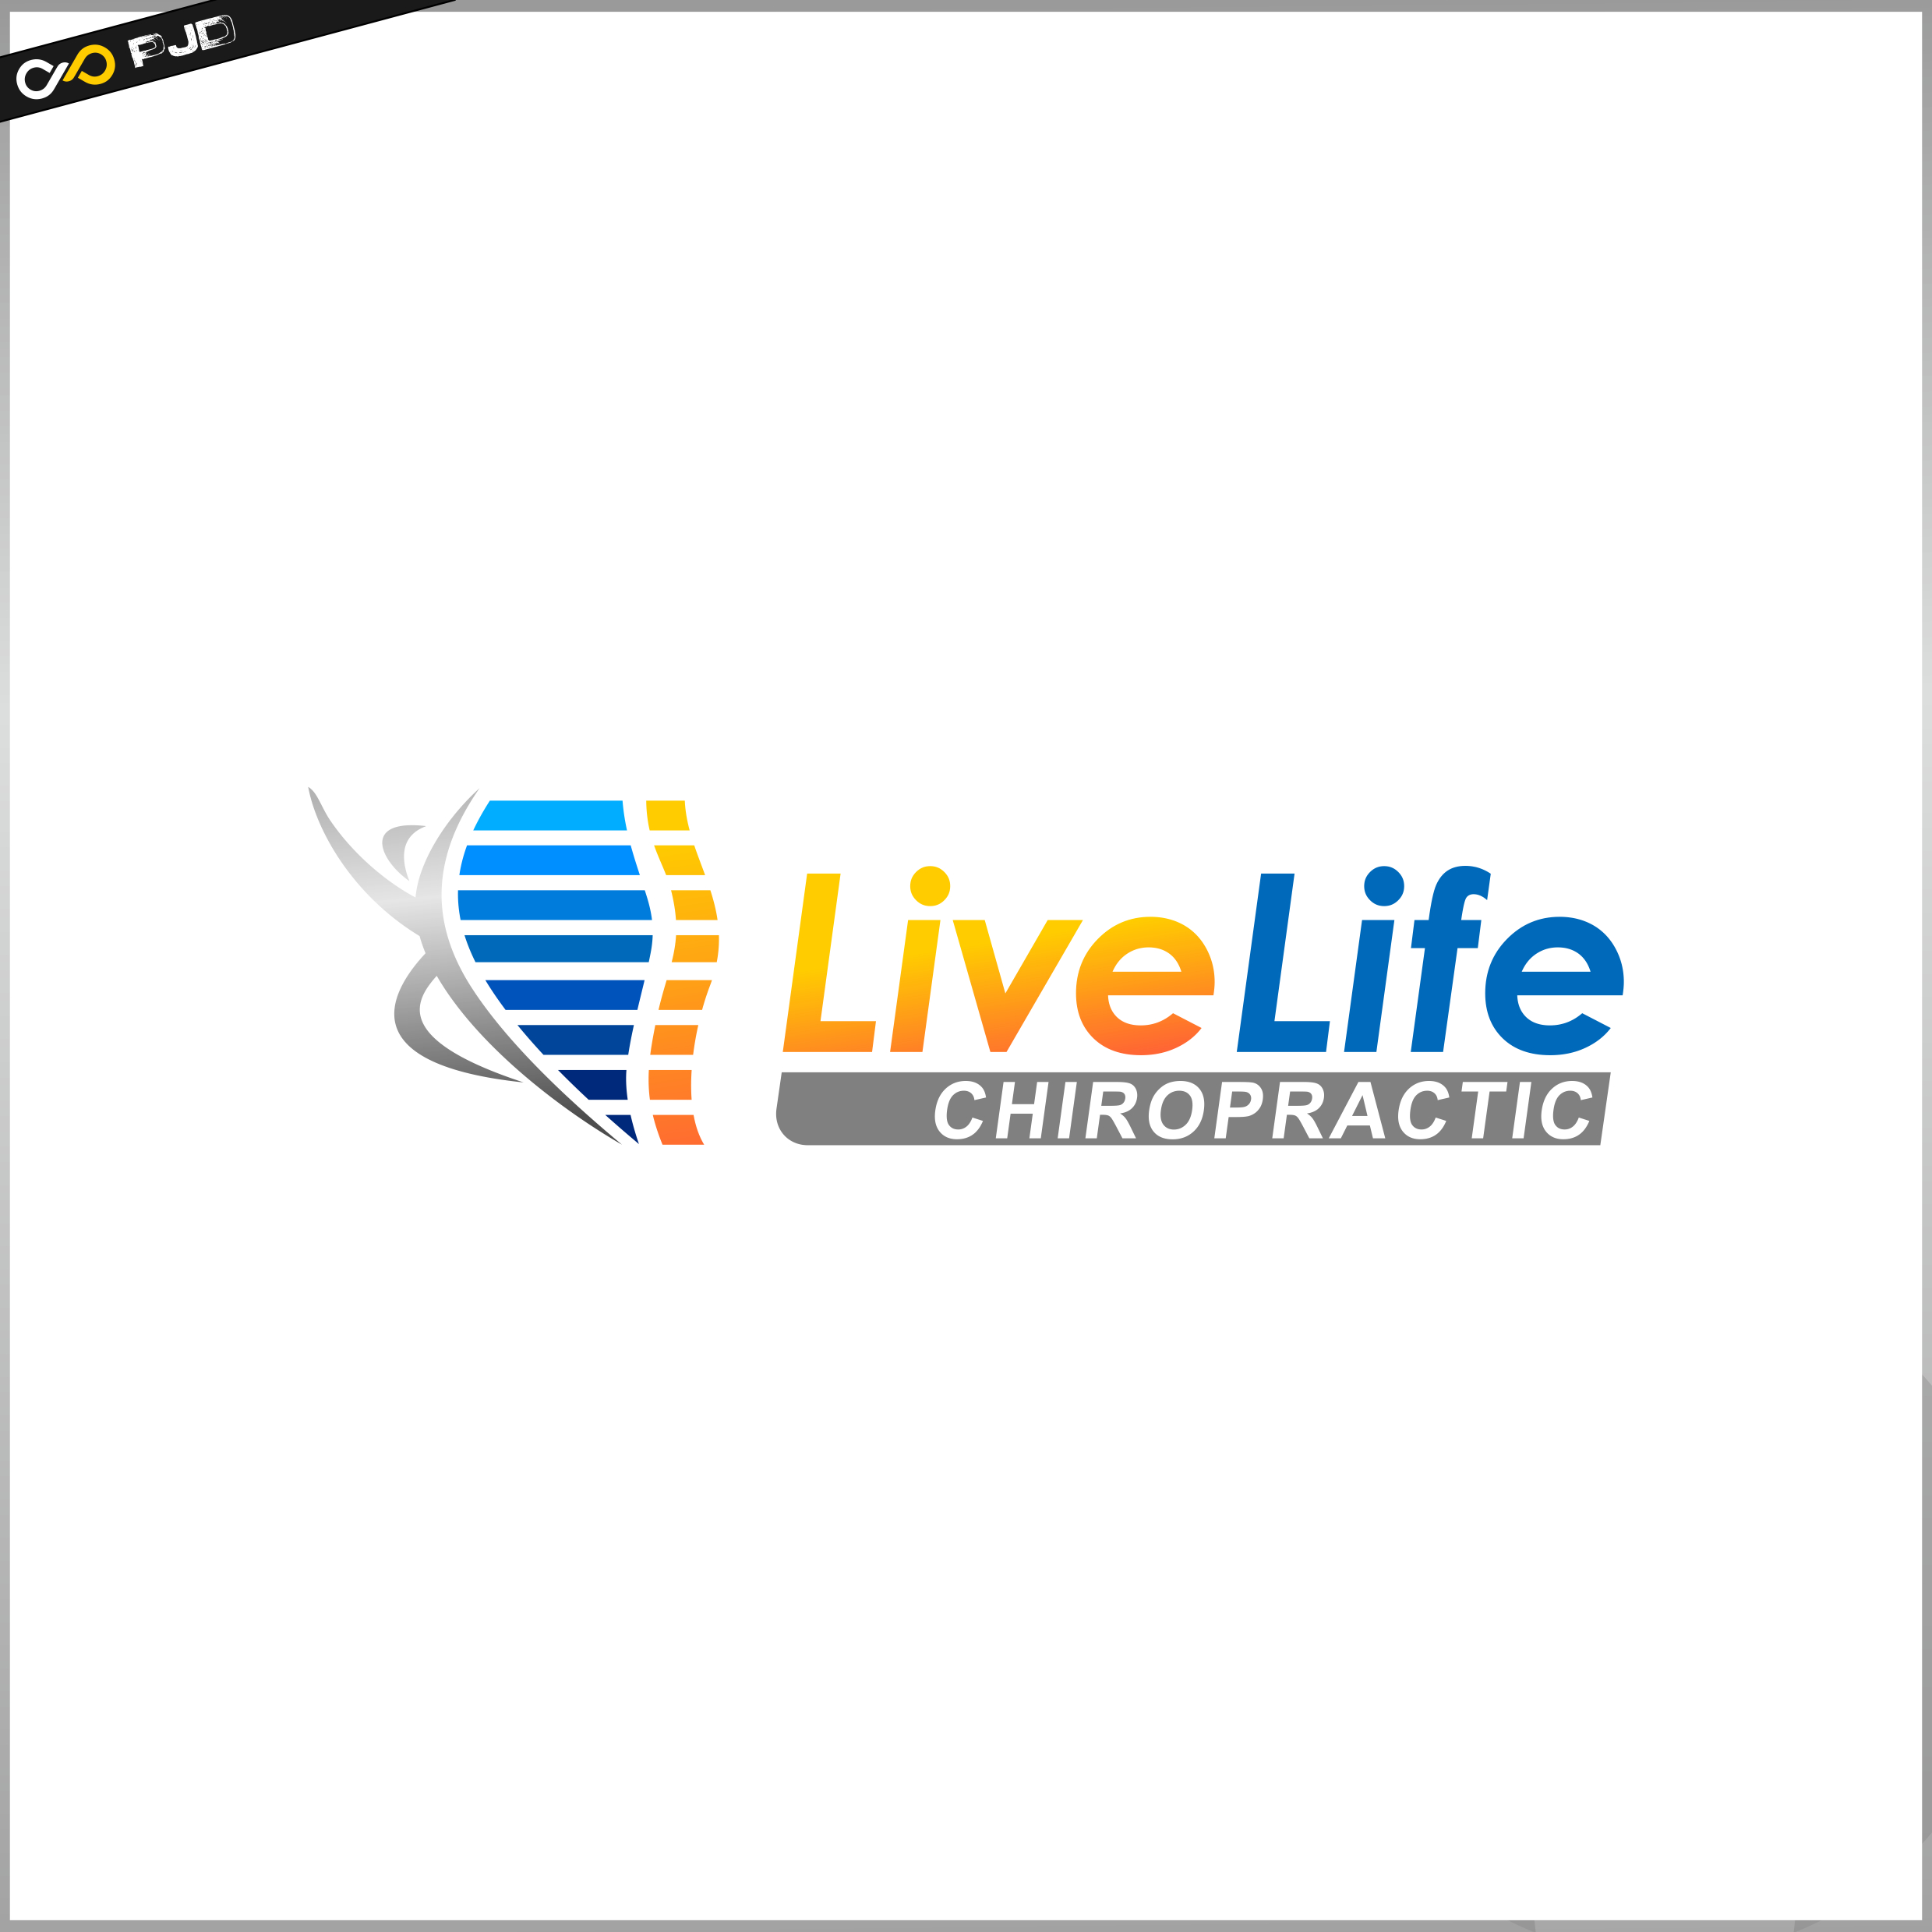 Logo Design by PJD - Entry No. 66 in the Logo Design Contest Captivating Logo Design for LiveLife Chiropractic.